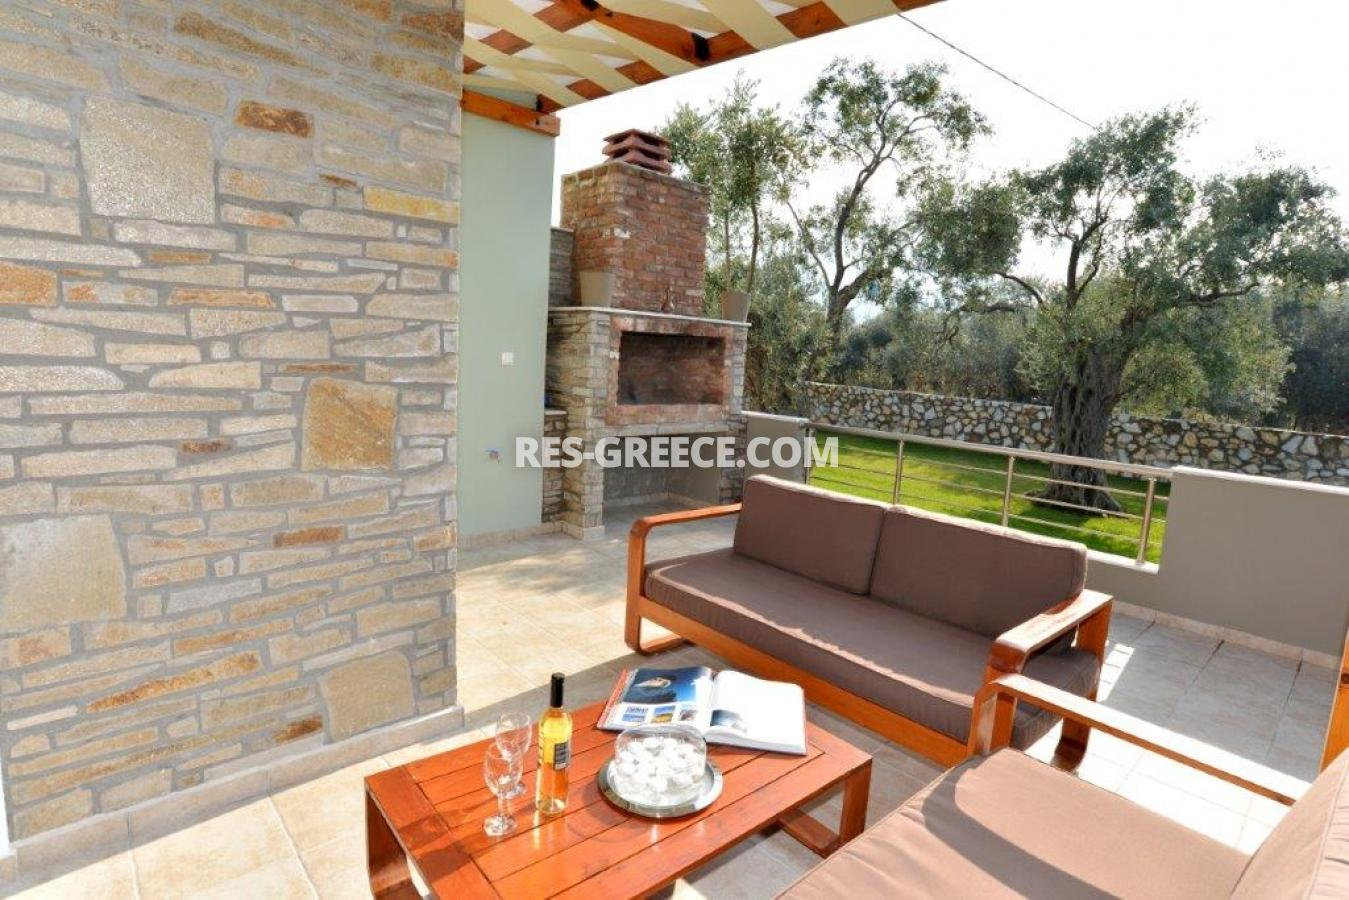 Arhondula Villa 3, Northern Aegean Islands, Greece - ready beachfront complex for rent on Thassos island with EOT licences - Photo 18